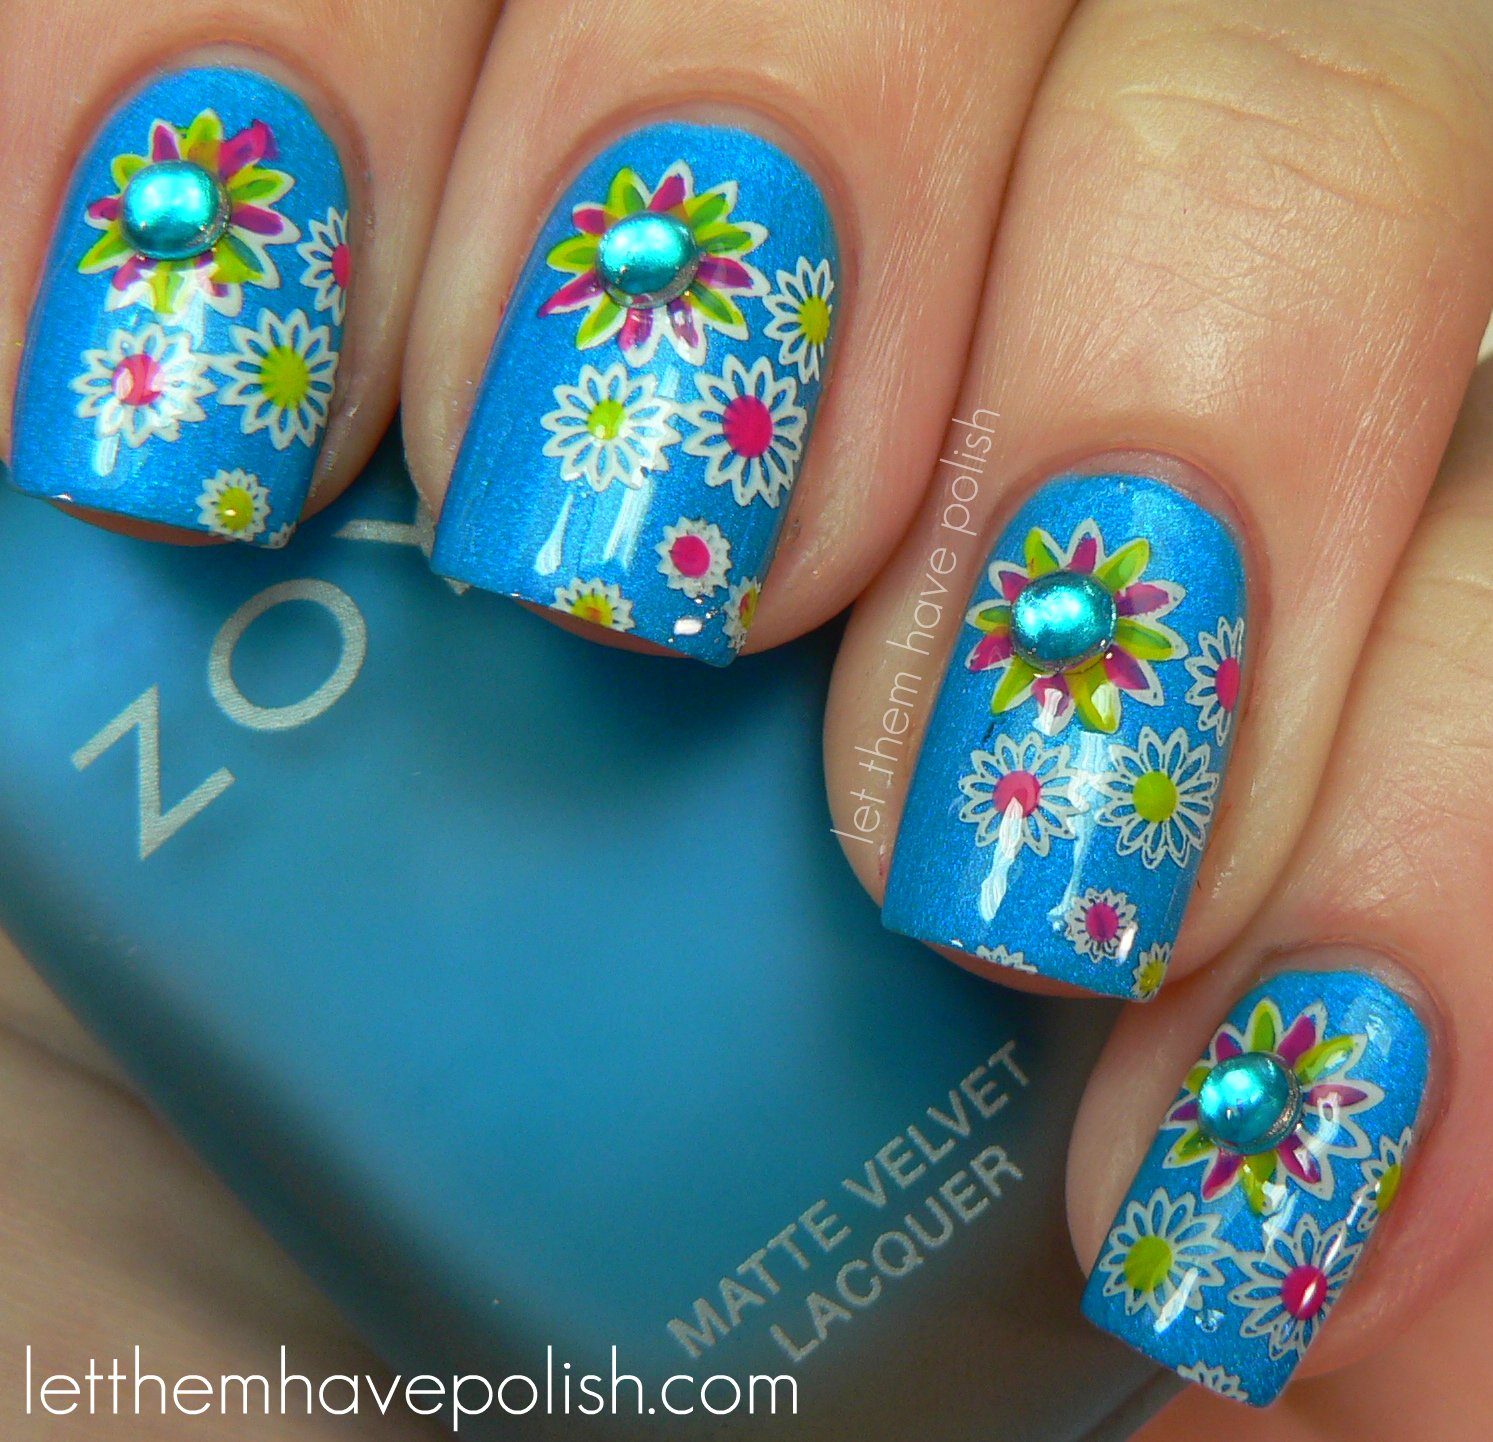 Flower Nails: Let Them Have Polish!: 31 Day Challenge! Day 14- Flower Nails